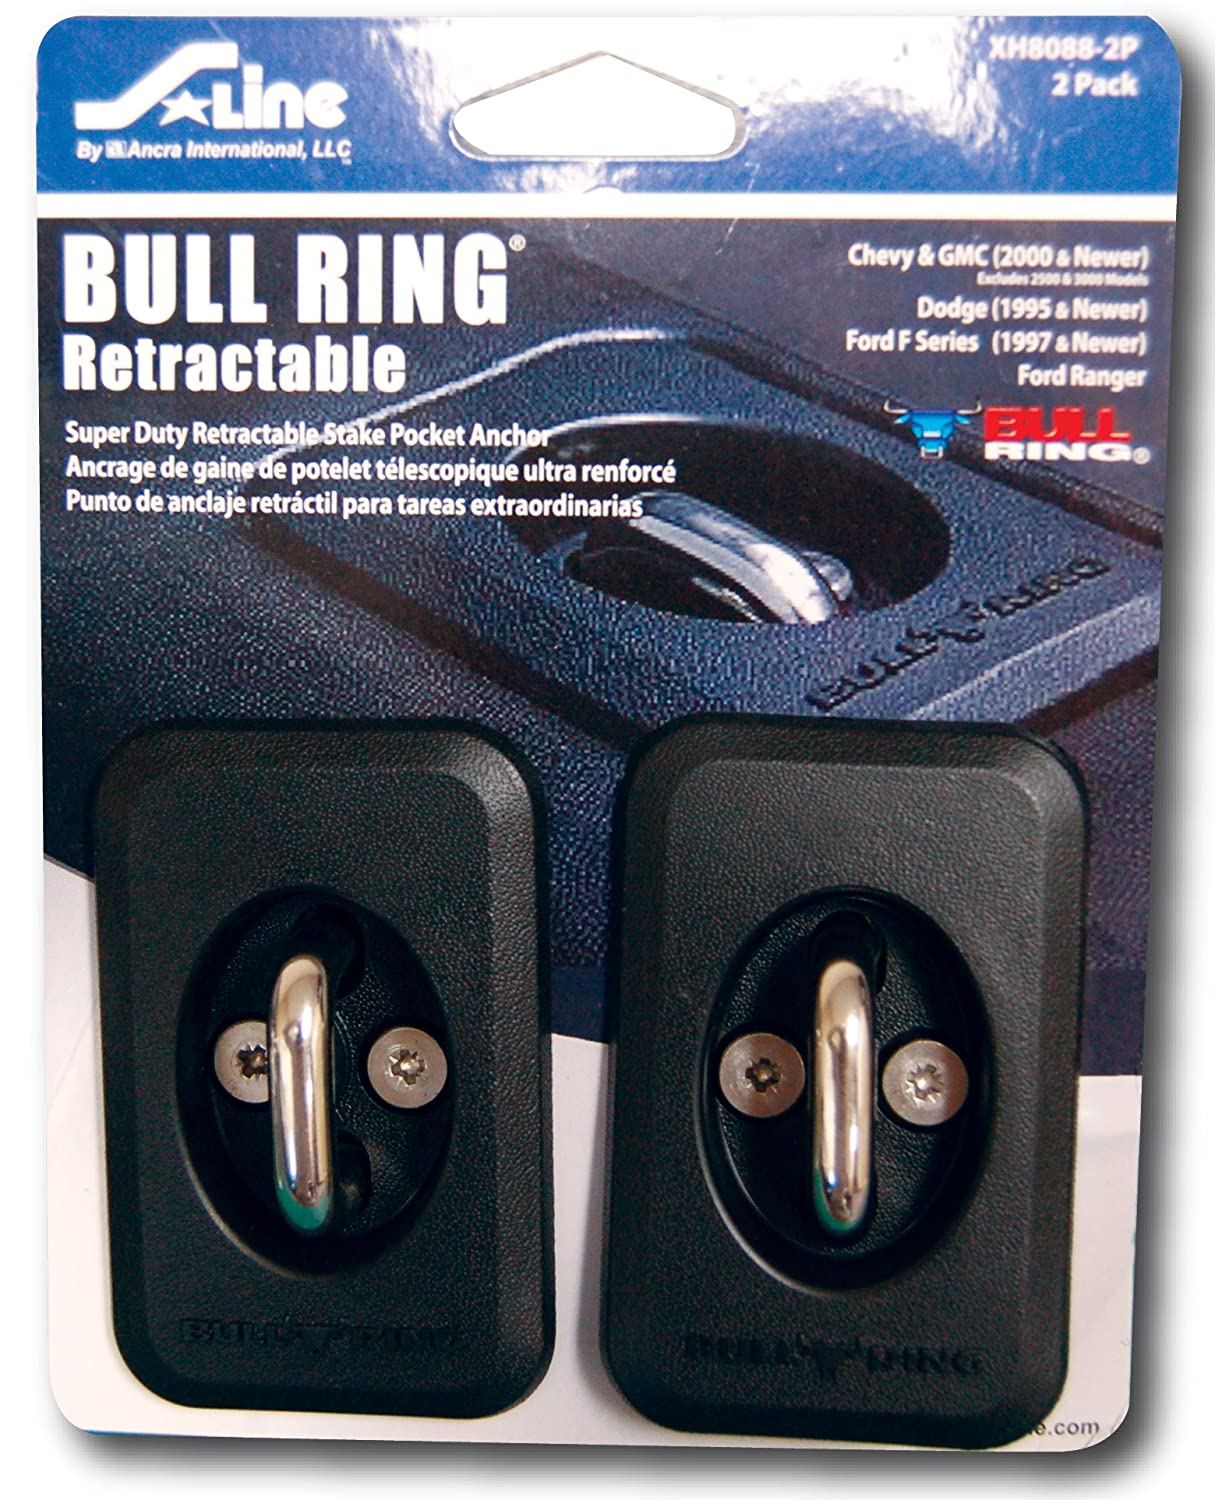 2-Pack Ancra S-Line XH8088-2P Bull Ring Retractable Stake Pocket Anchor